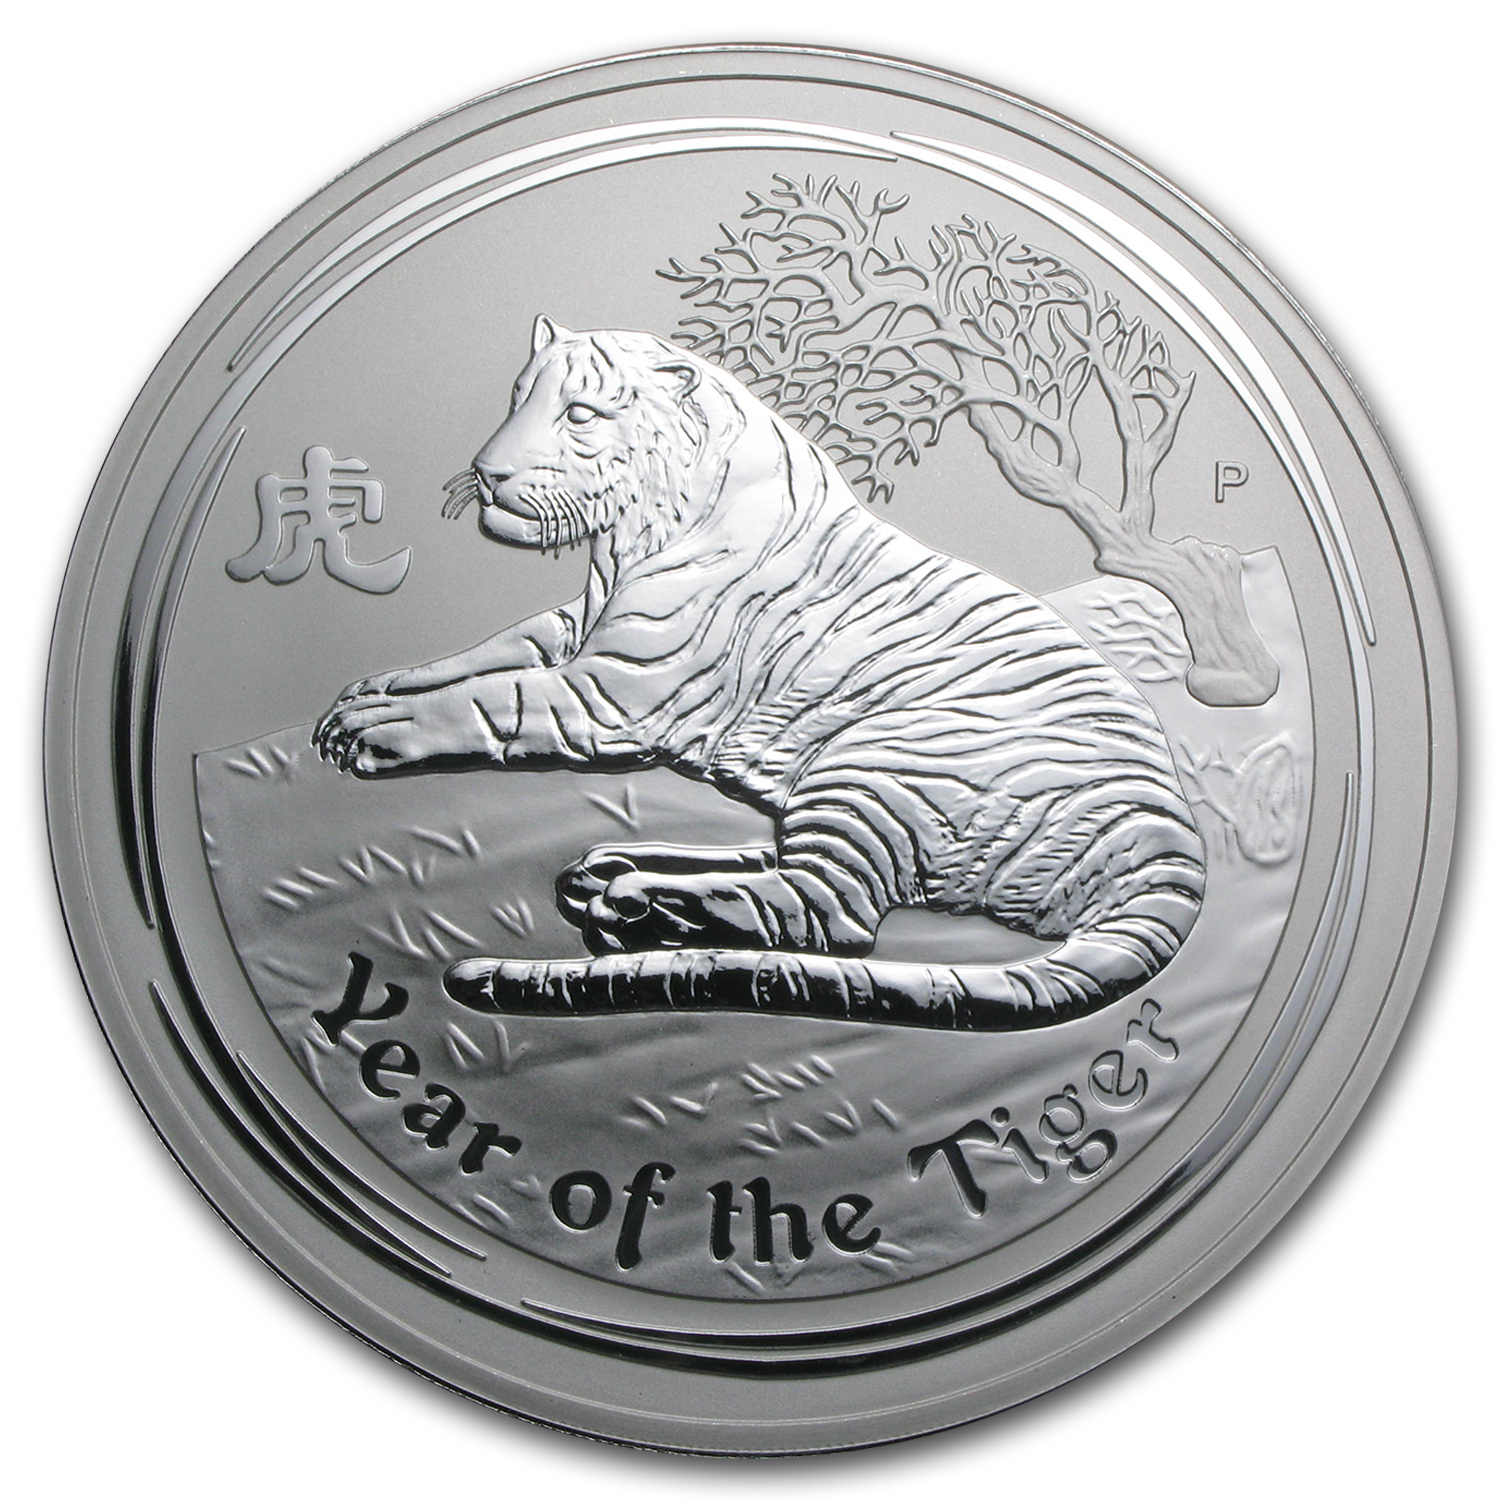 2010 1 kilo (32.15 oz) Silver Lunar Year of the Tiger (SII)